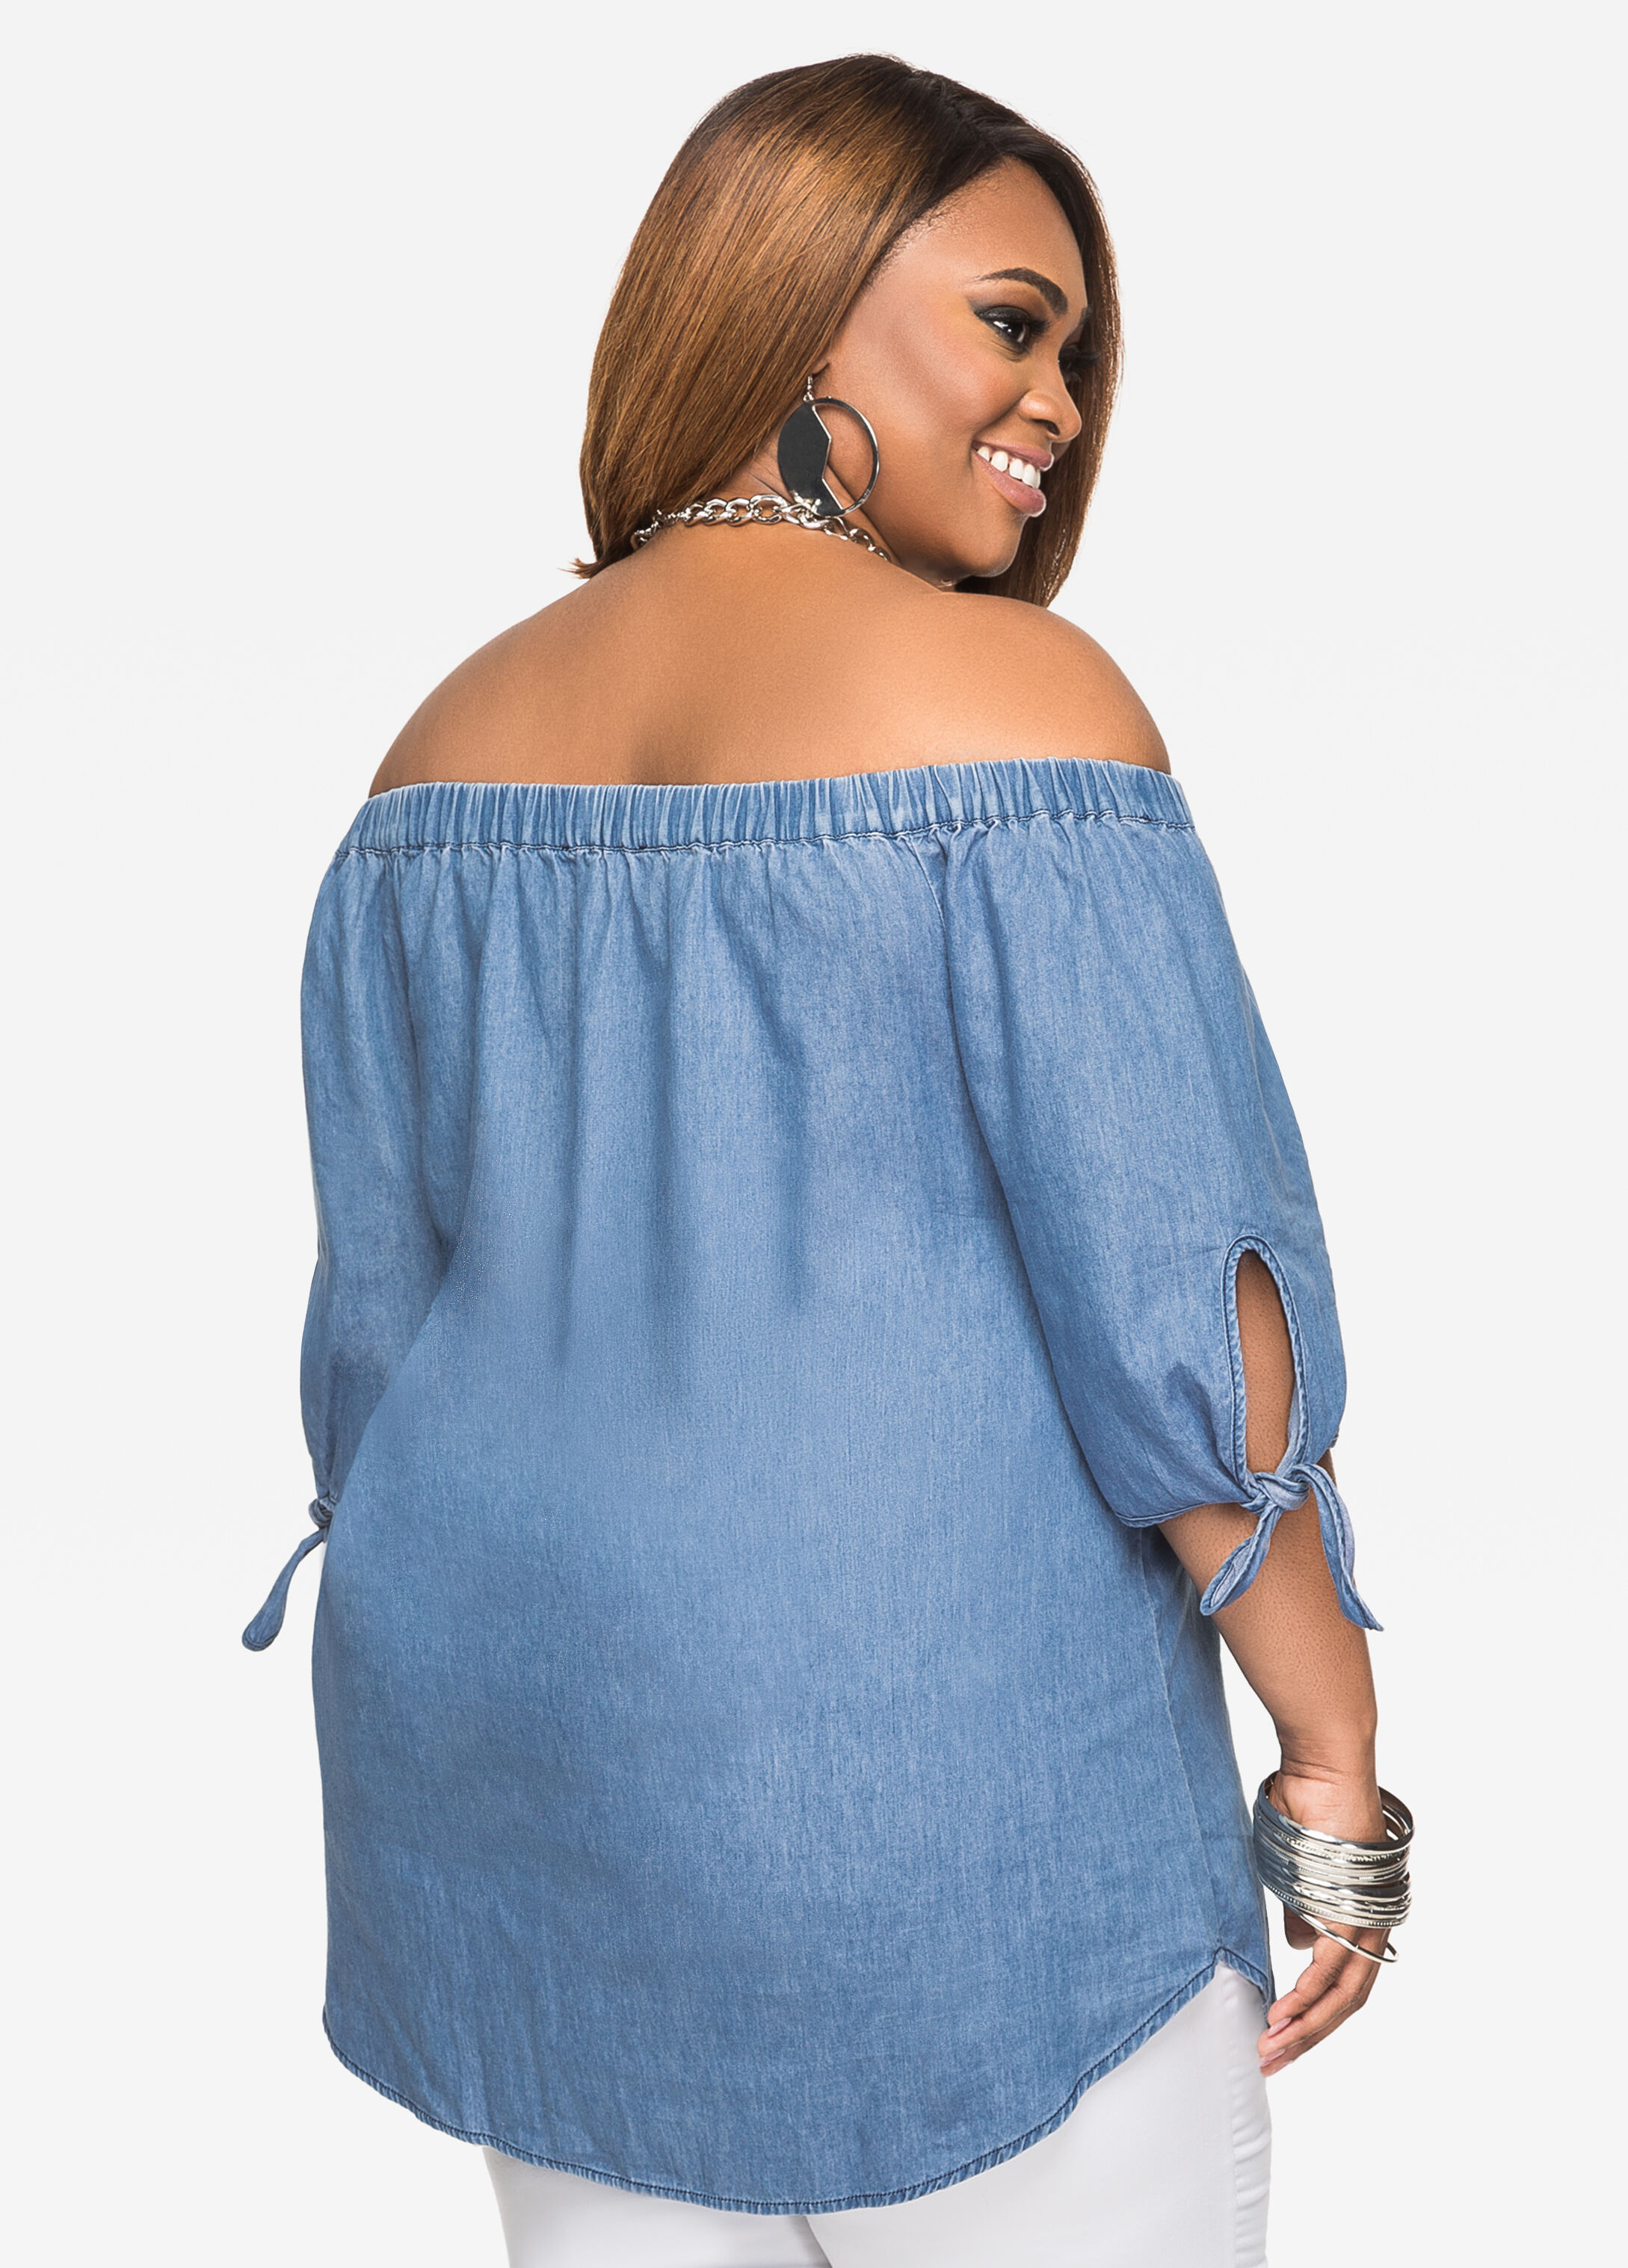 Plus Size Shirts - Chambray Off-Shoulder Top